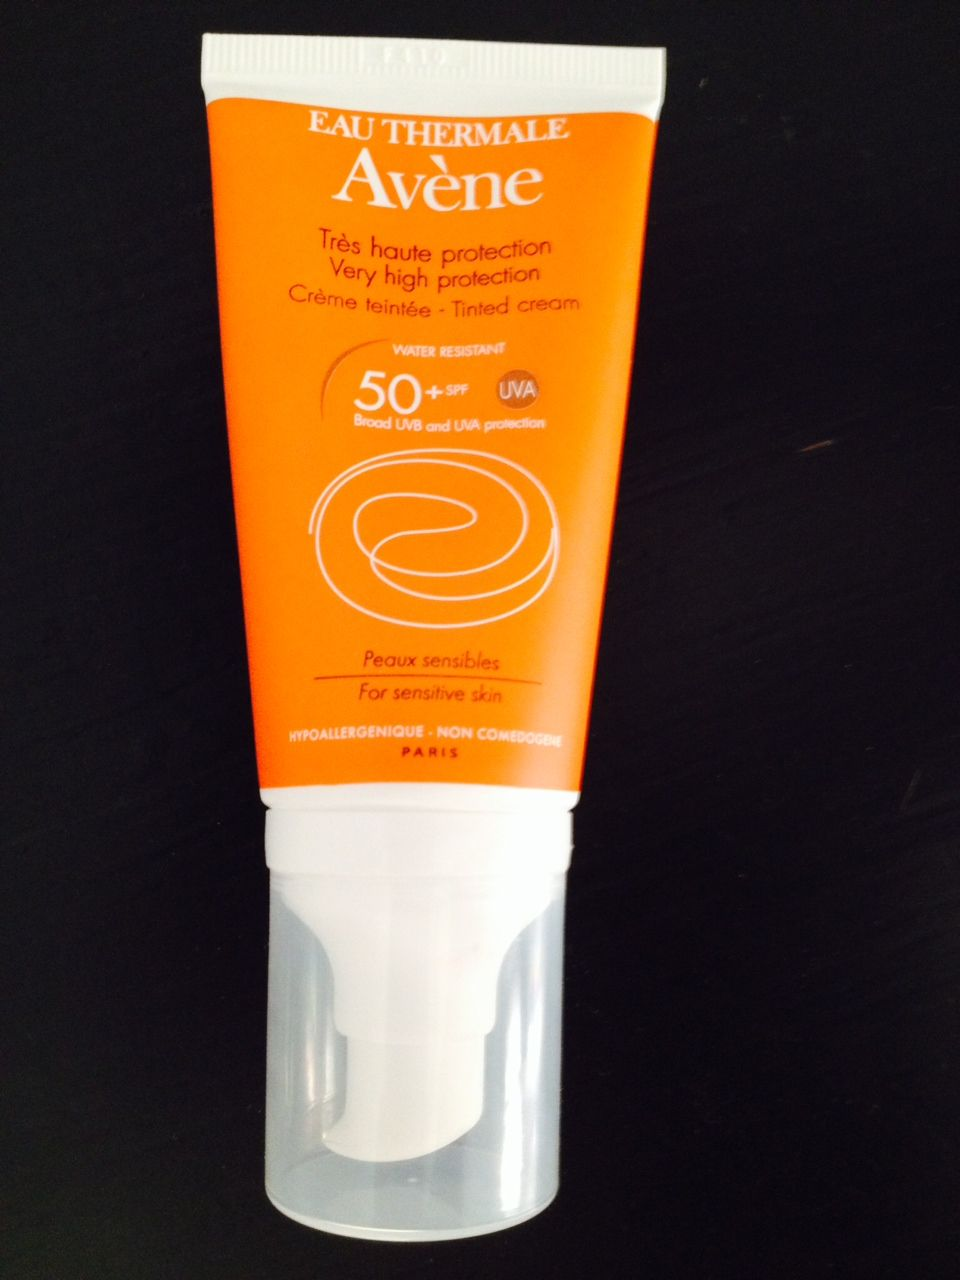 Avene  Avene Eau Thermale Very high protection Tinted Cream spf 50 Sensitive skin [DISCONTINUED]